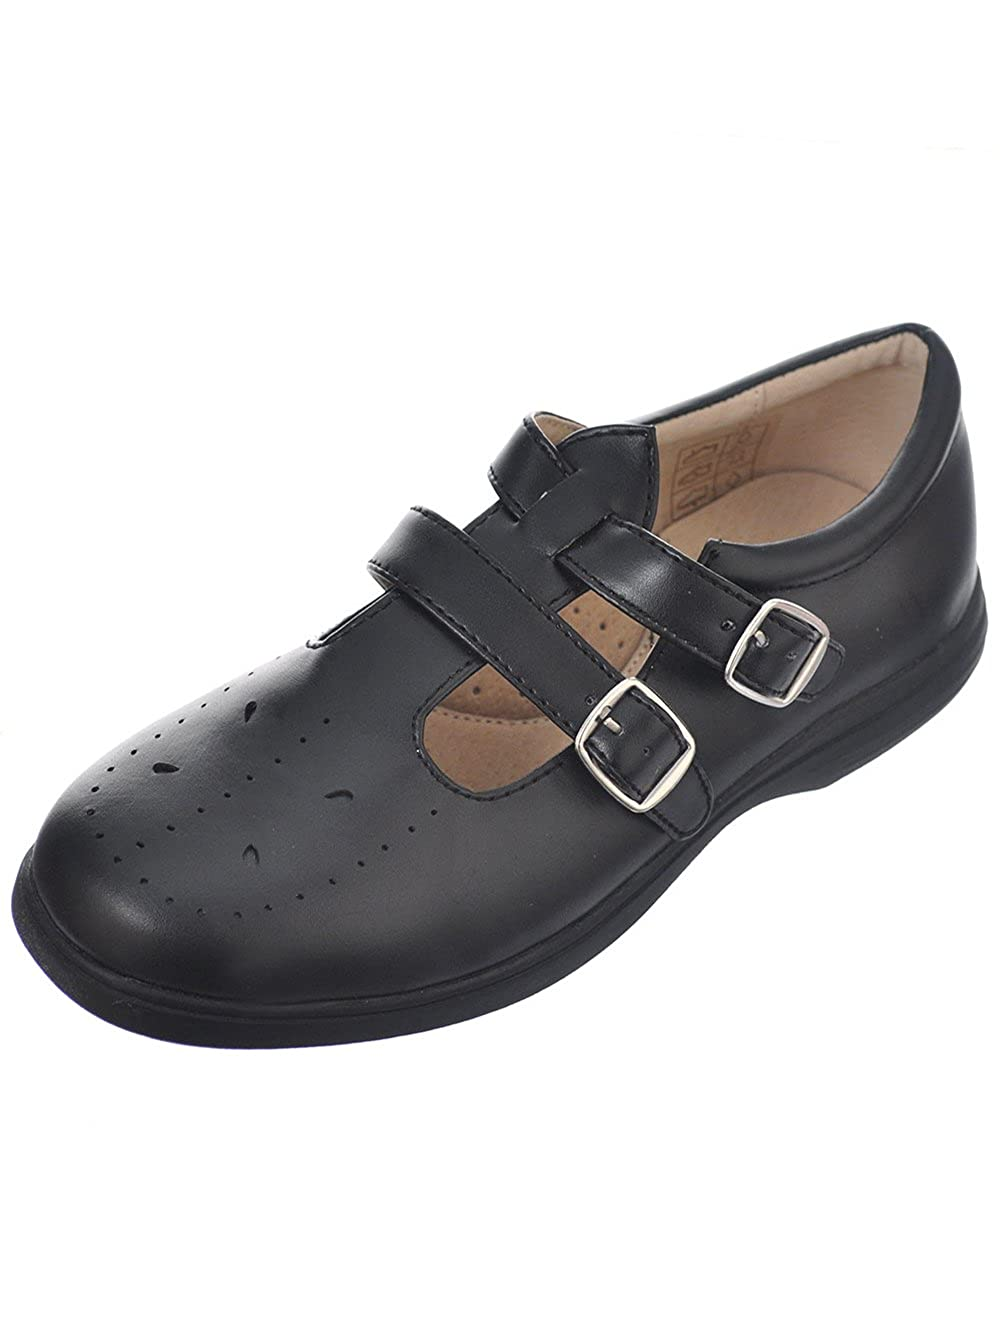 Easy Strider Girls Double Buckle T-Strap Mary Janes